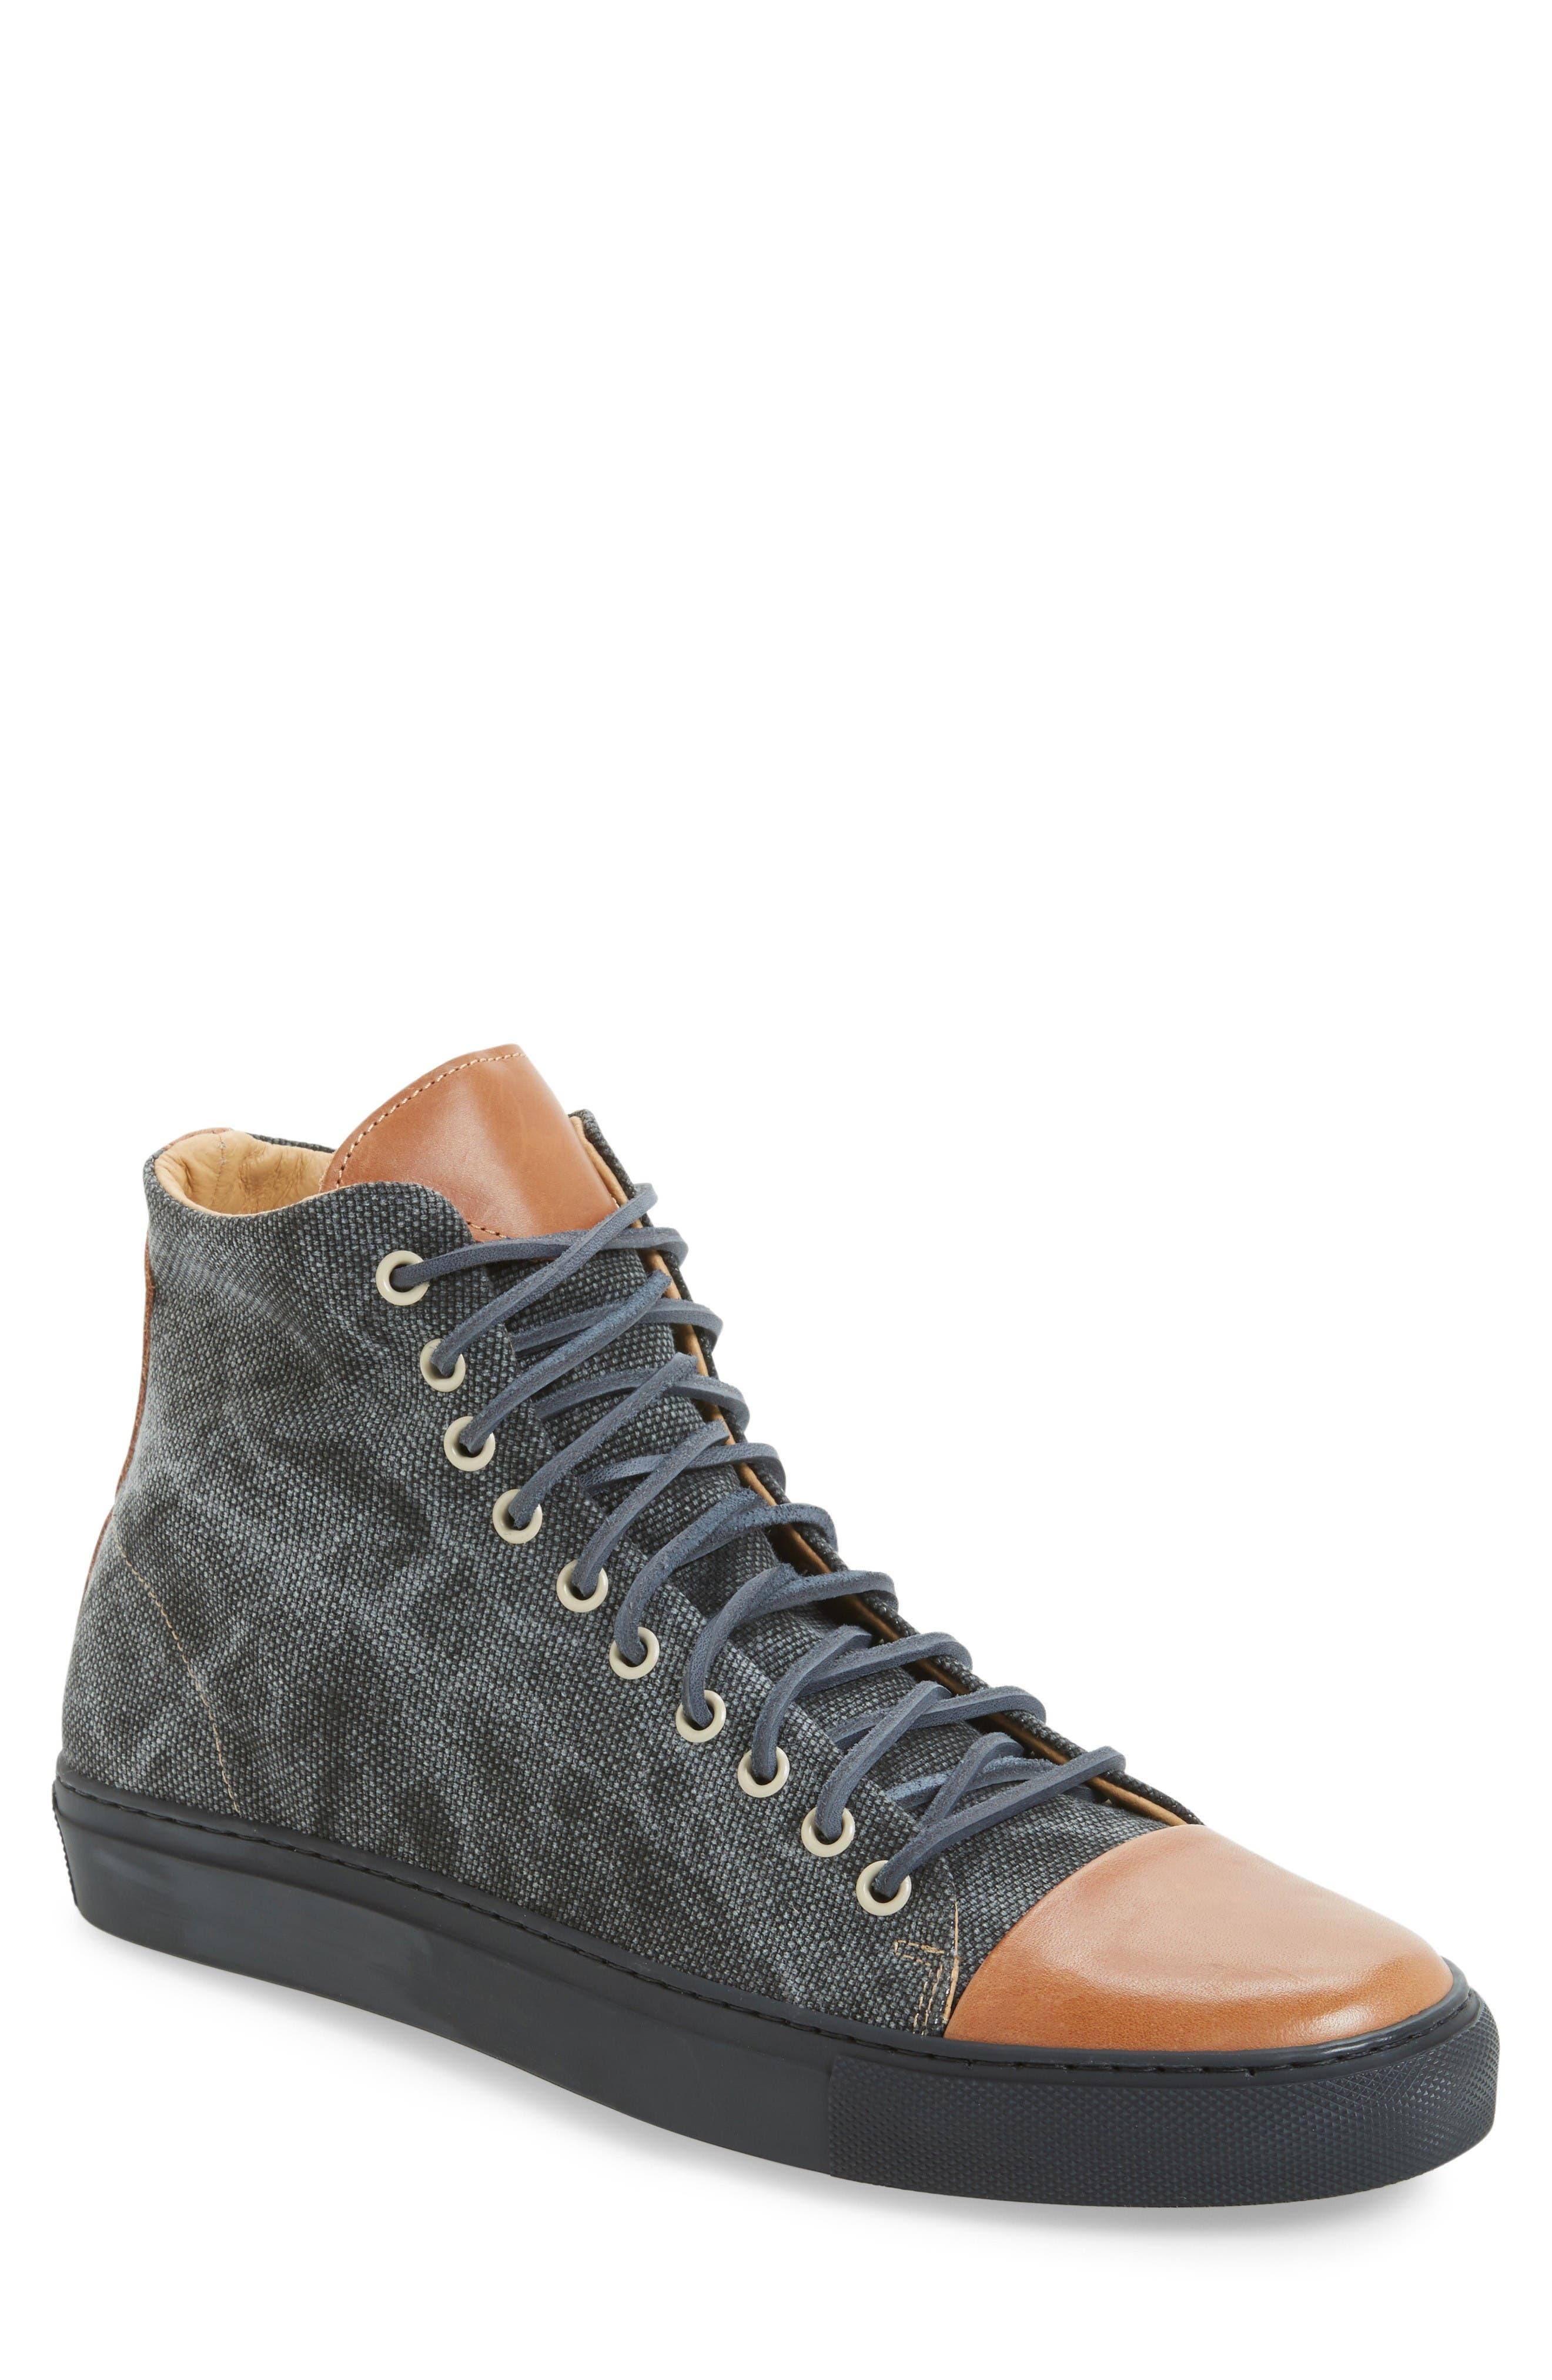 Alternate Image 1 Selected - Kenneth Cole New York Good Sport High Top Sneaker (Men)